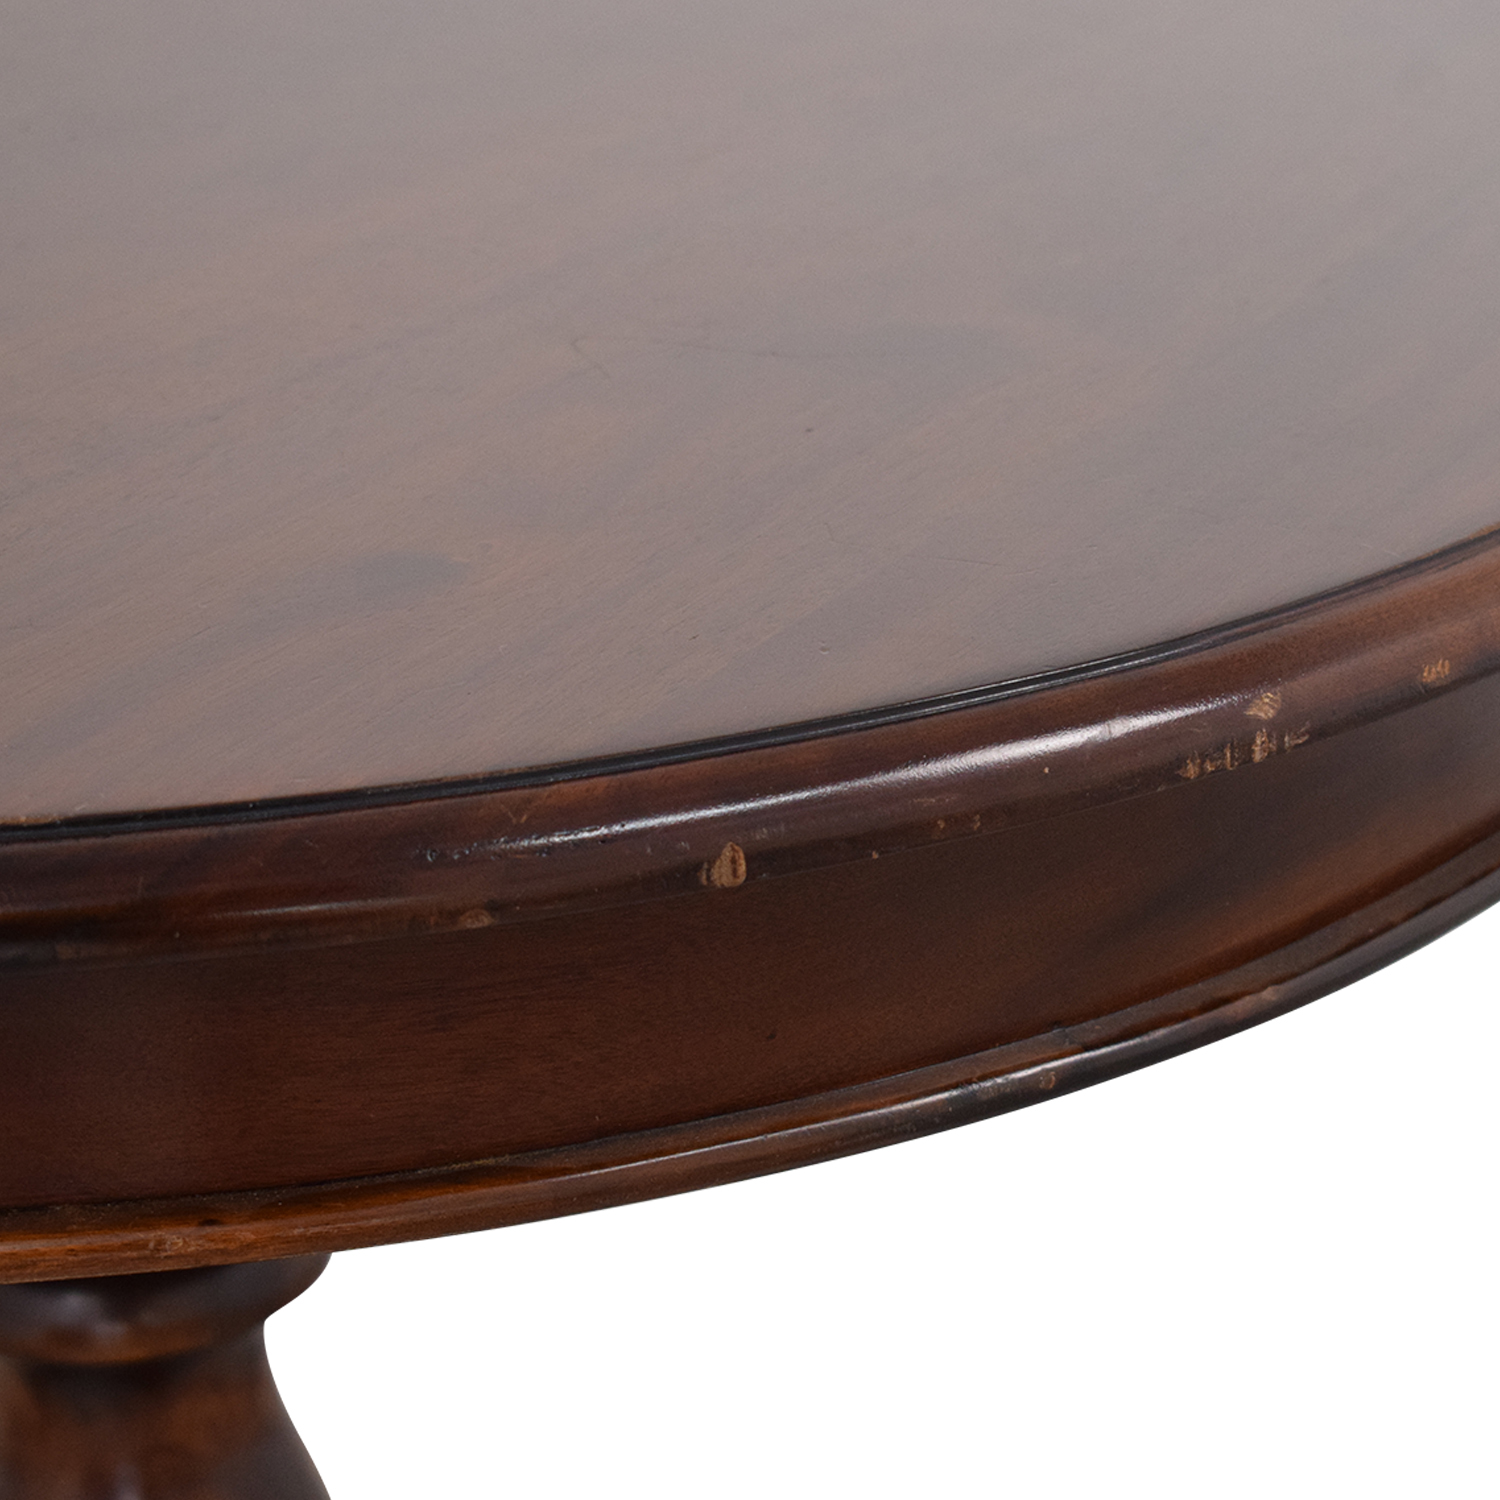 Ethan Allen Ethan Allen Round Dining Table dimensions